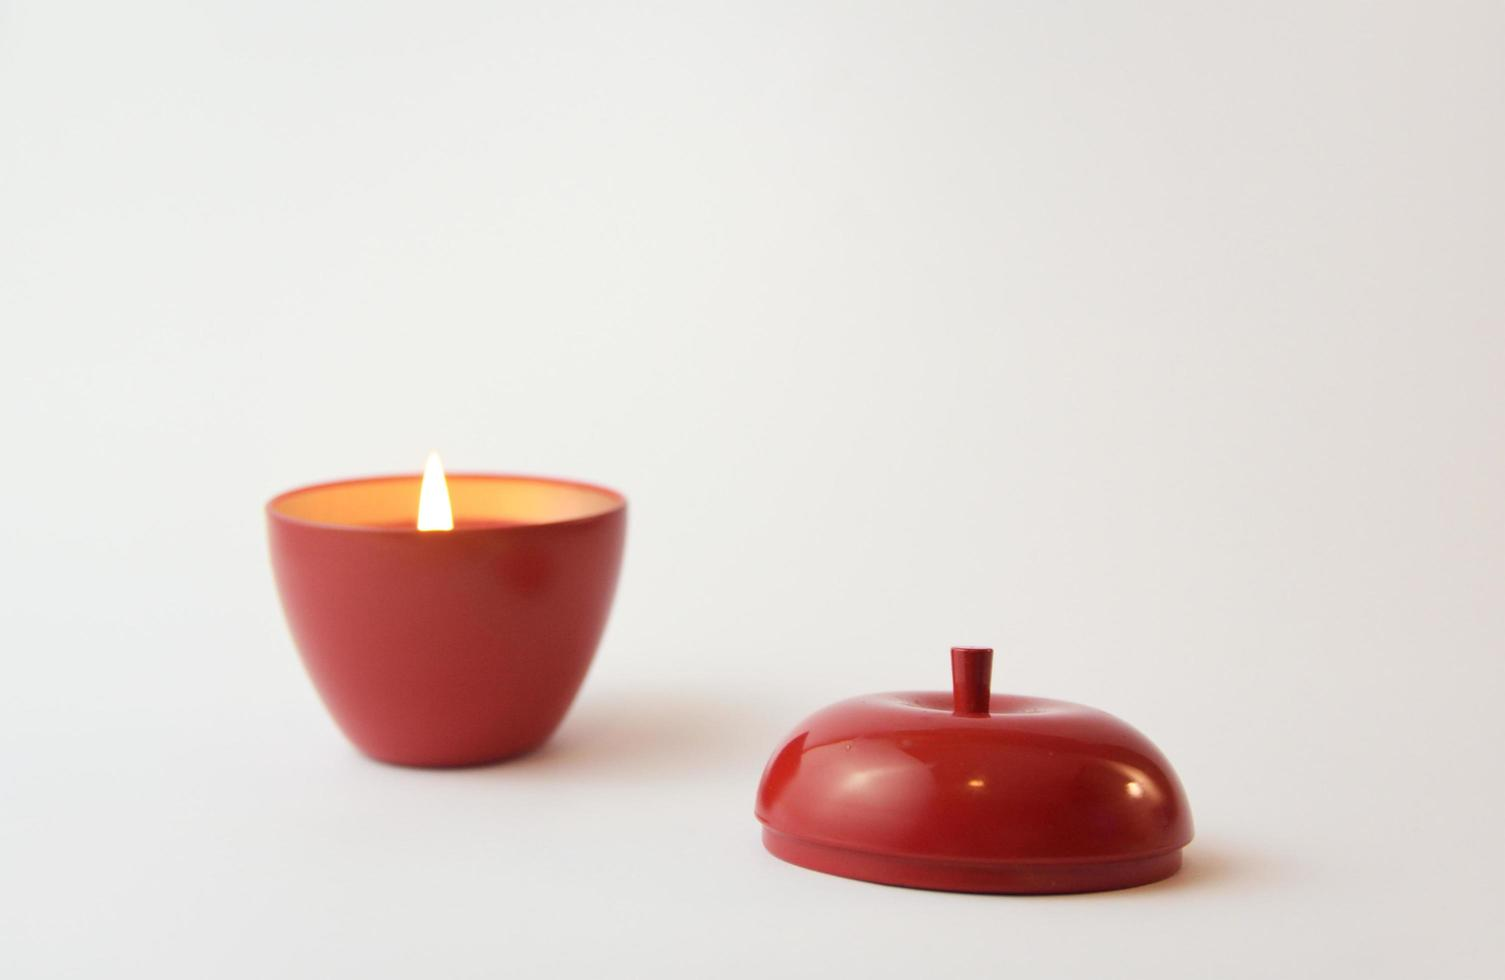 An apple-shaped red candle photo